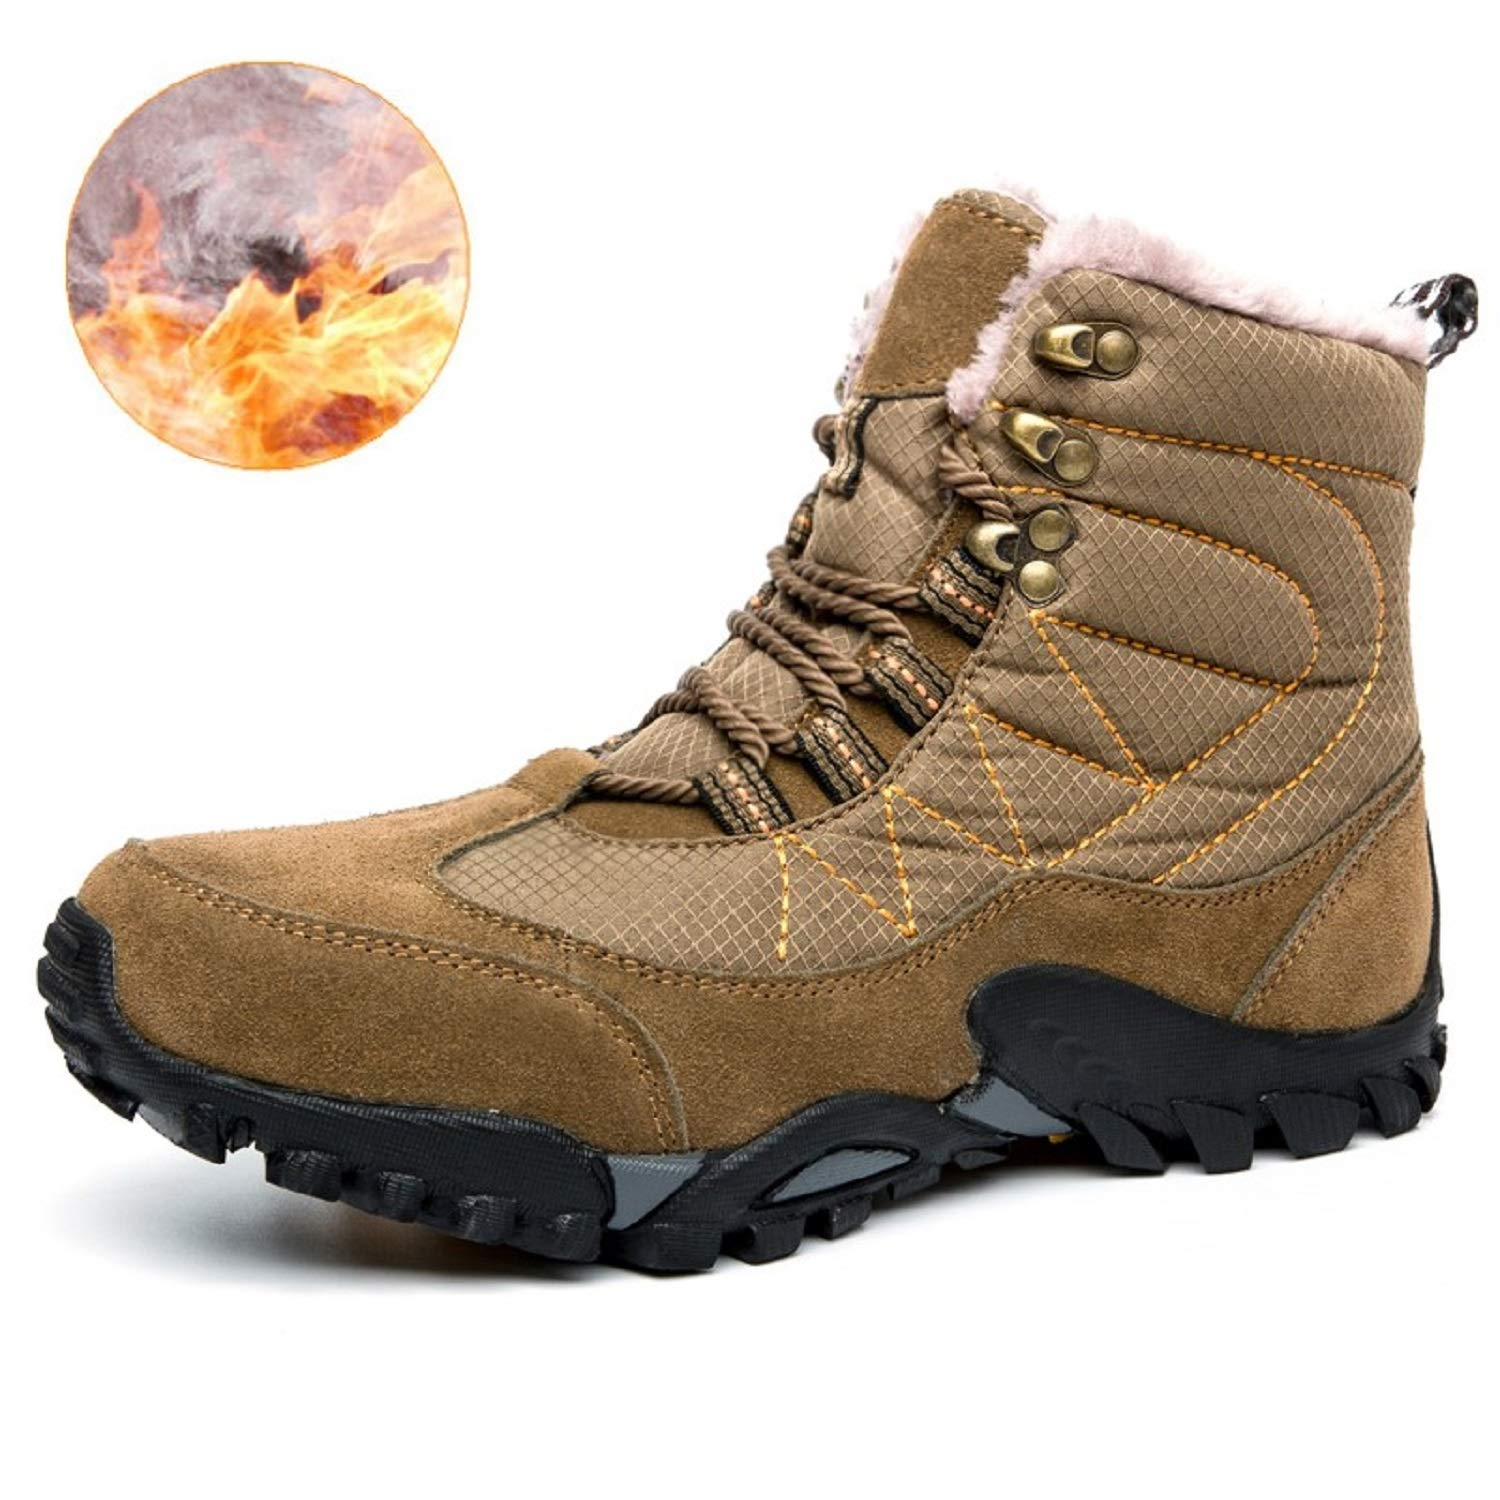 TQGOLD Outdoor Men Winter Casual Snow Boots with Fur Lined Slip-on Waterproof Warm Ankle Hiking Boots Men Sneakers